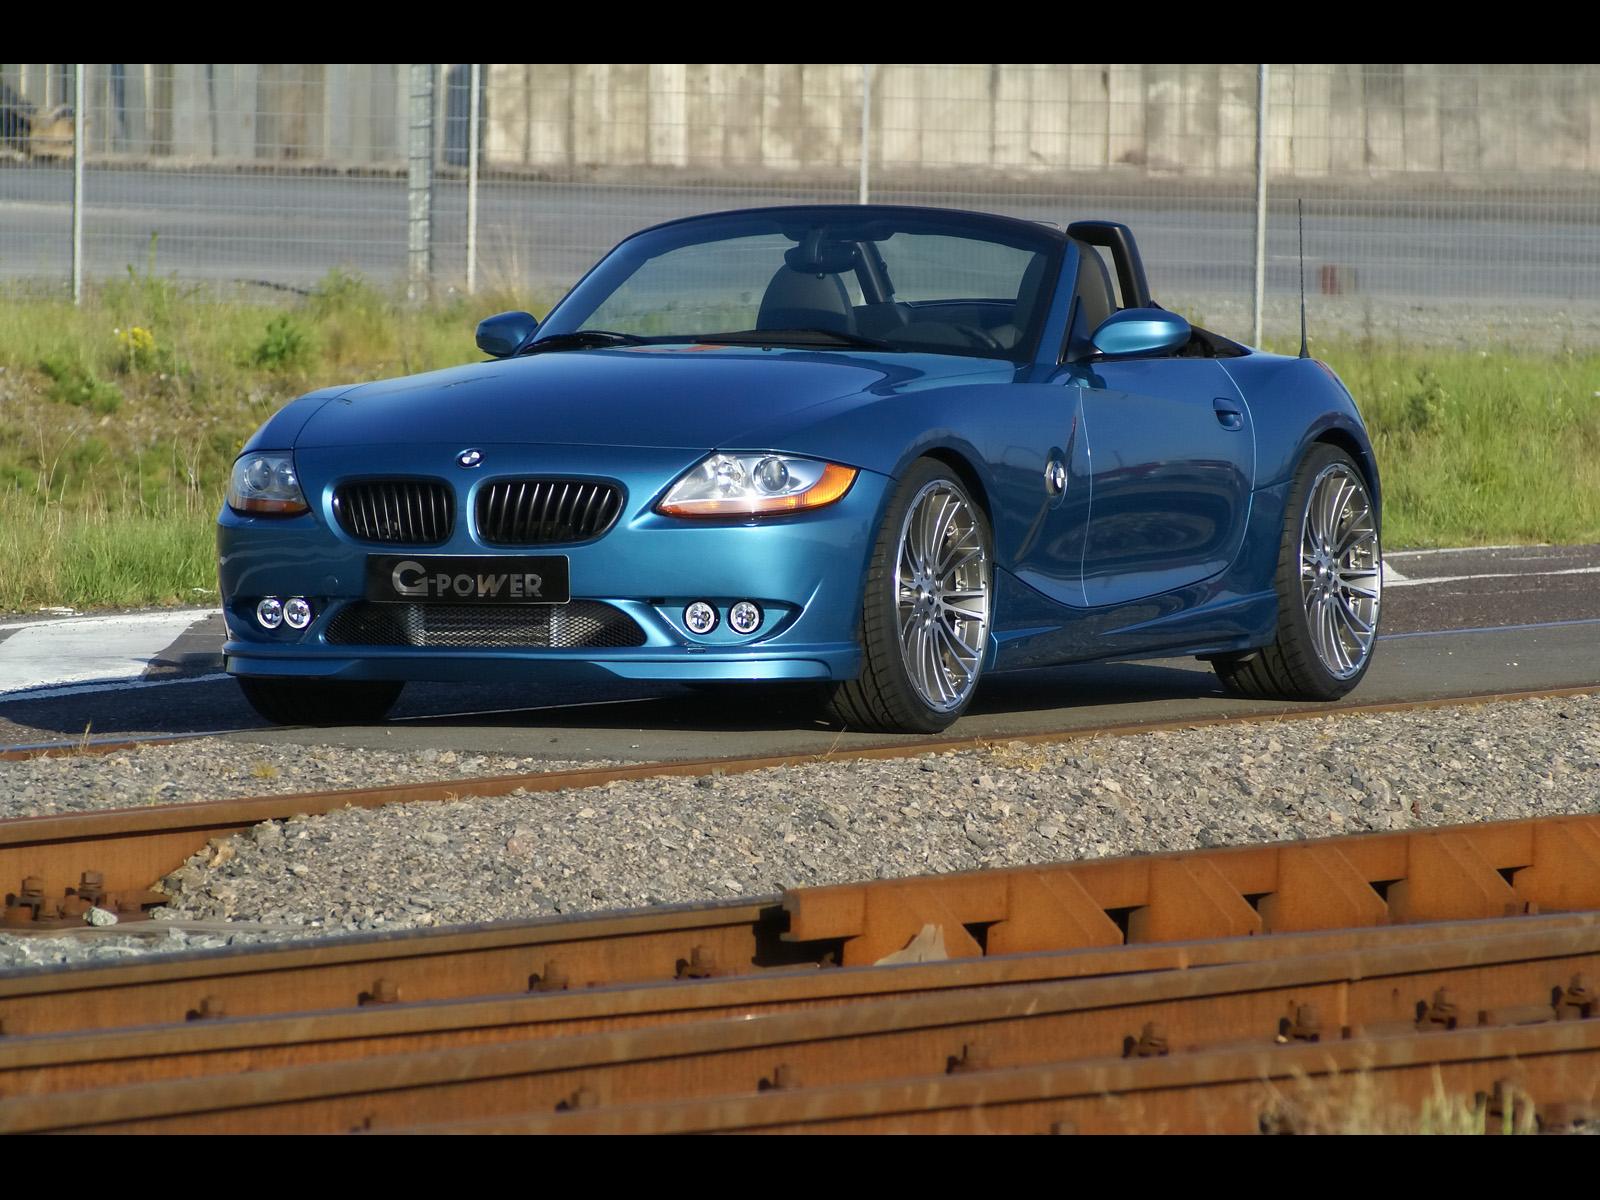 G Power Bmw G4 3 0i Evo Iii E85 Photos Photogallery With 7 Pics Carsbase Com Cars Pictures